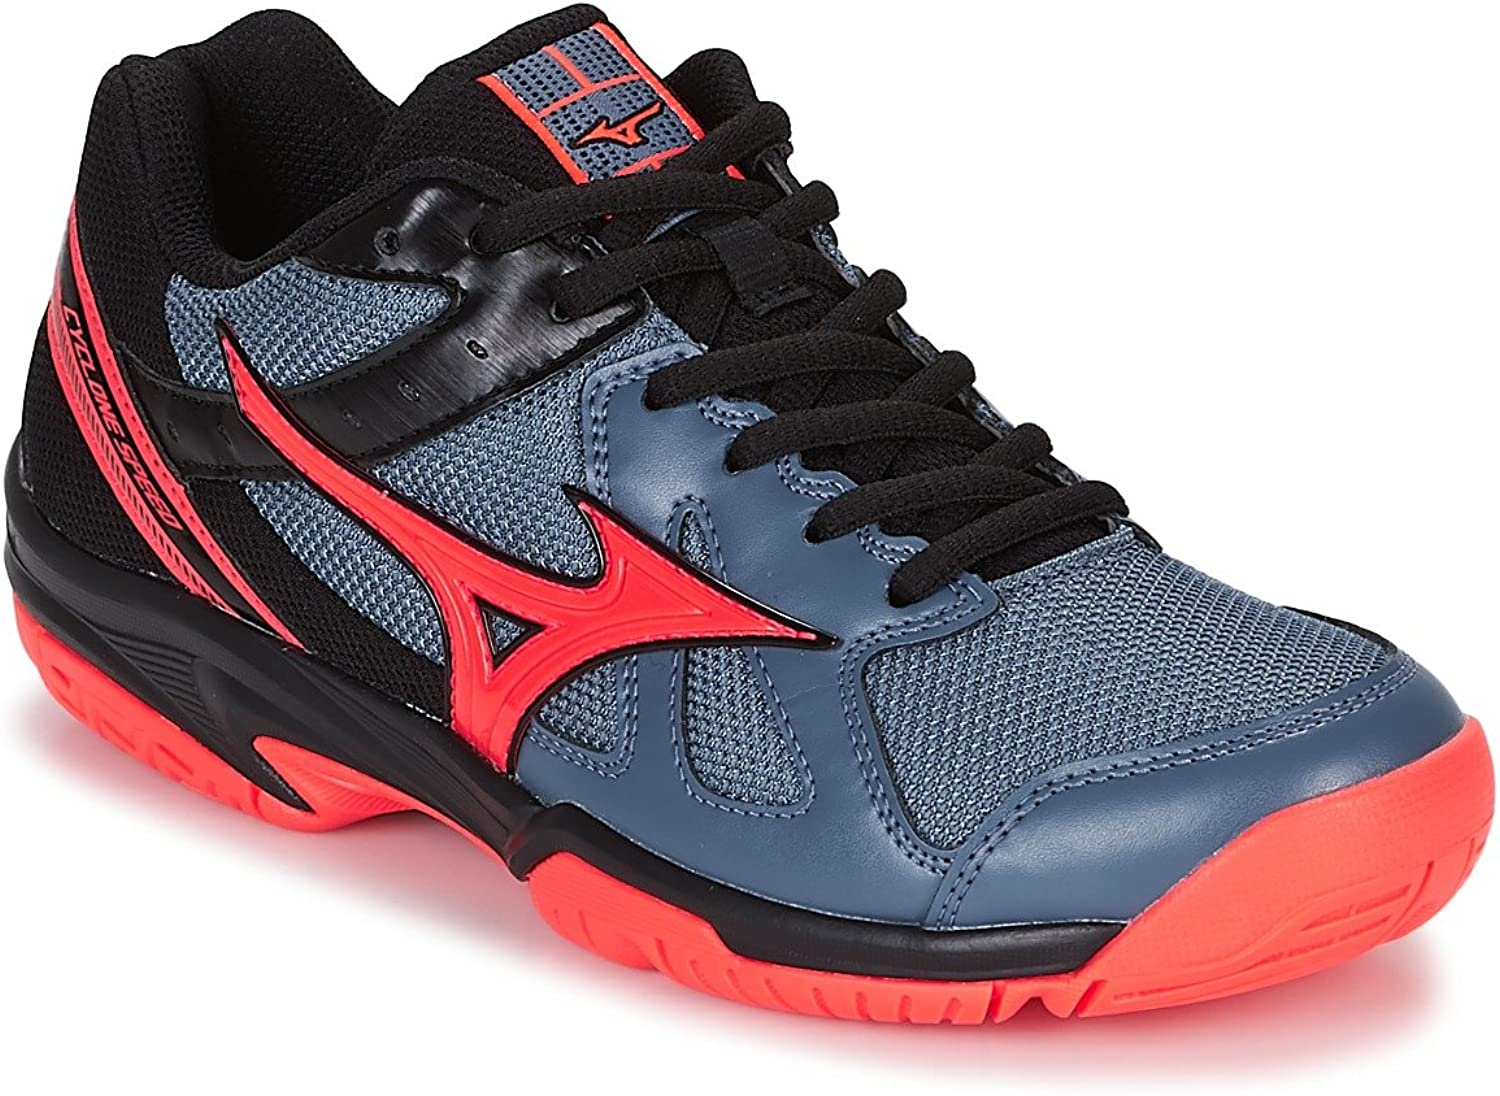 Mizuno - Cyclone Speed - V1GC178065